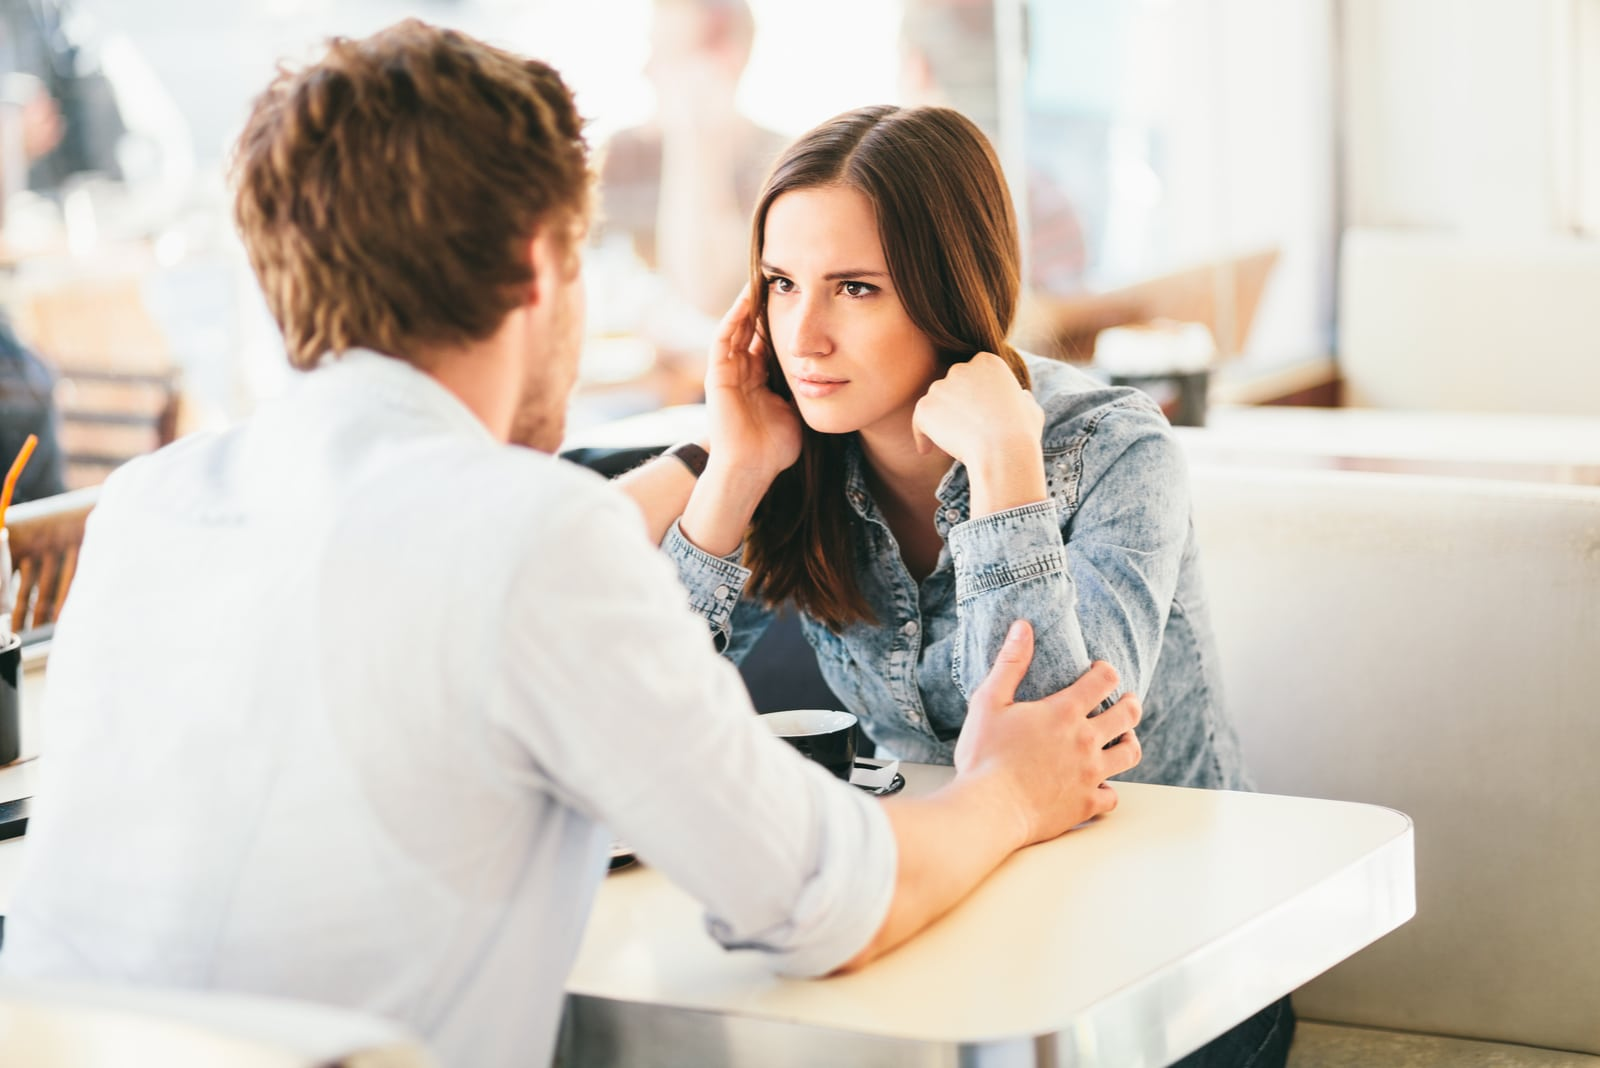 man trying to talk with sad woman